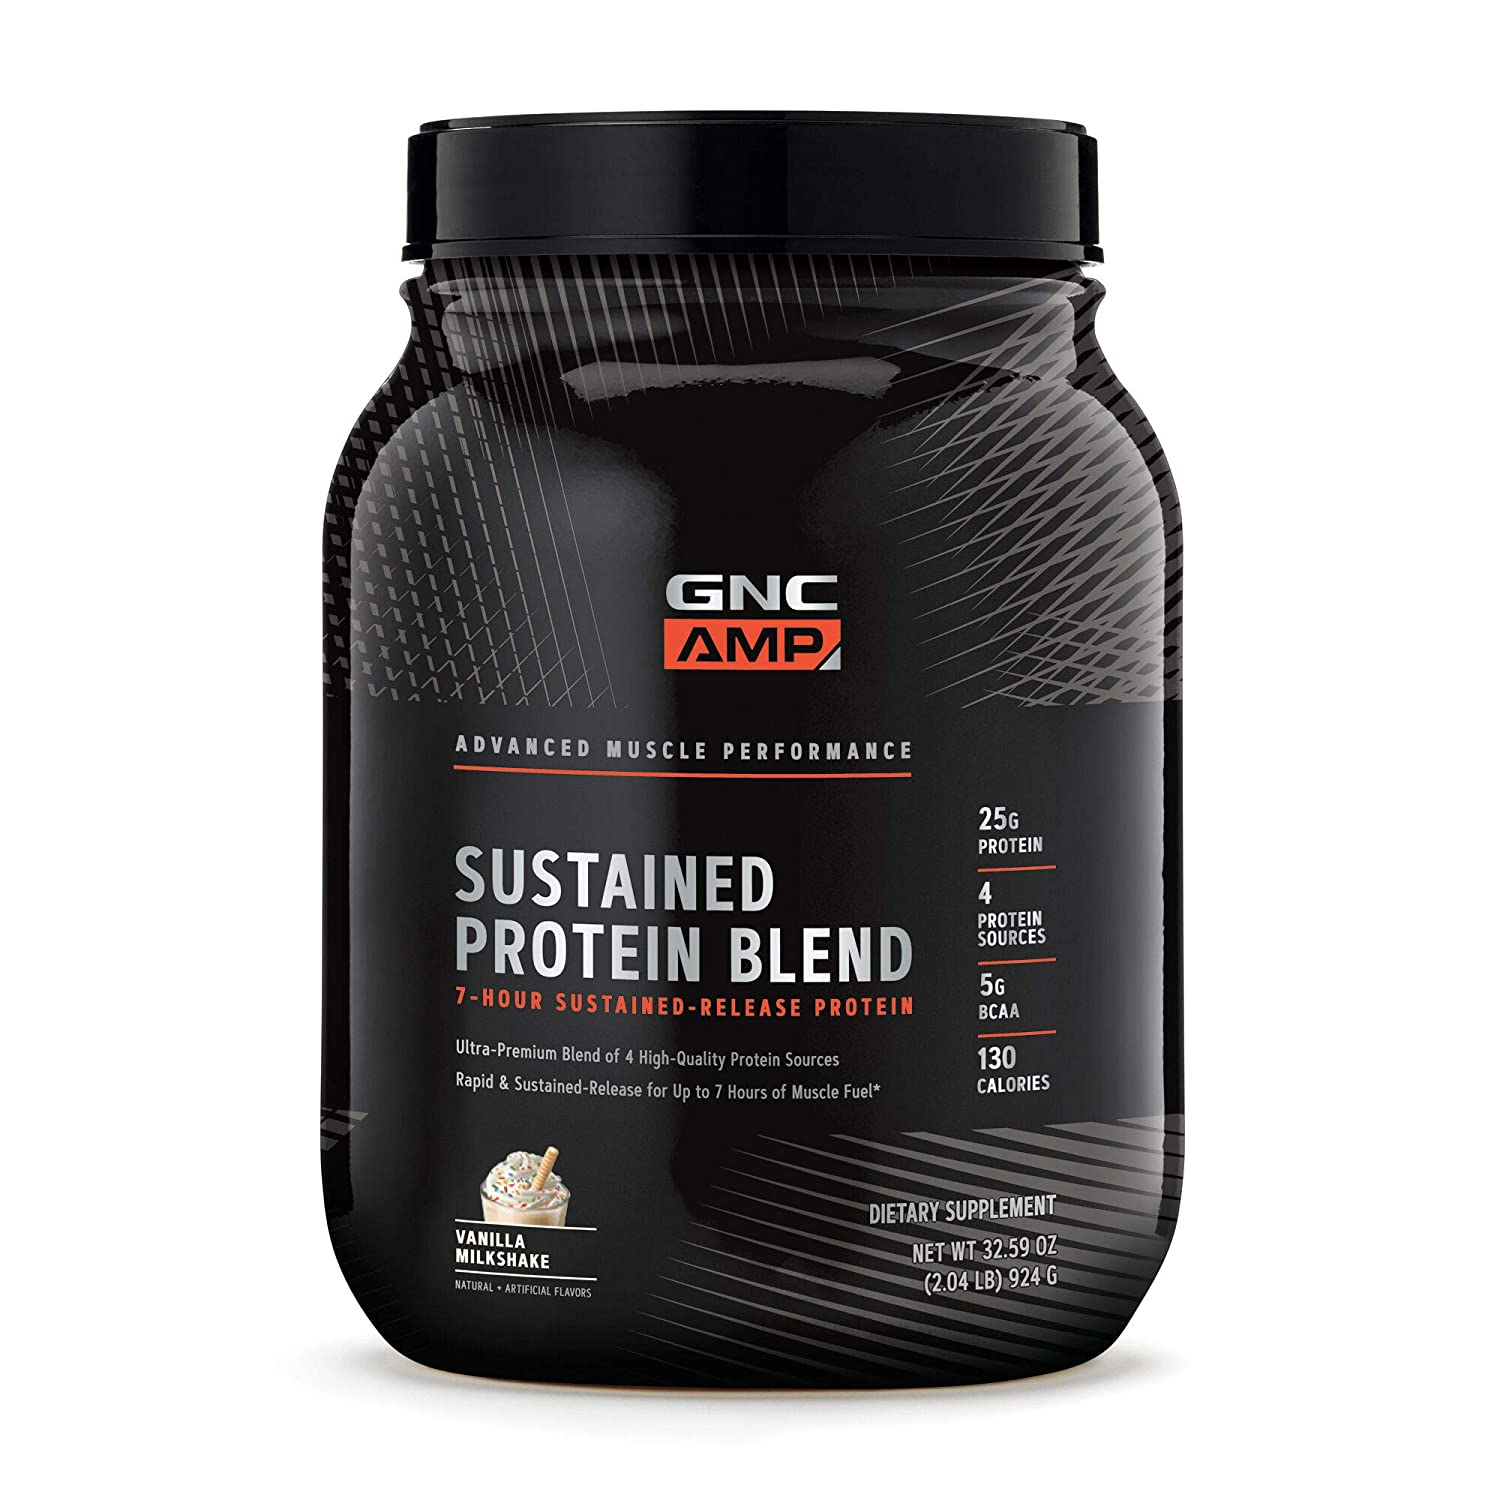 GNC AMP Sustained Protein Blend – Vanilla Milkshake, 2.04 lbs, High-Quality Protein Powder for Muscle Fuel